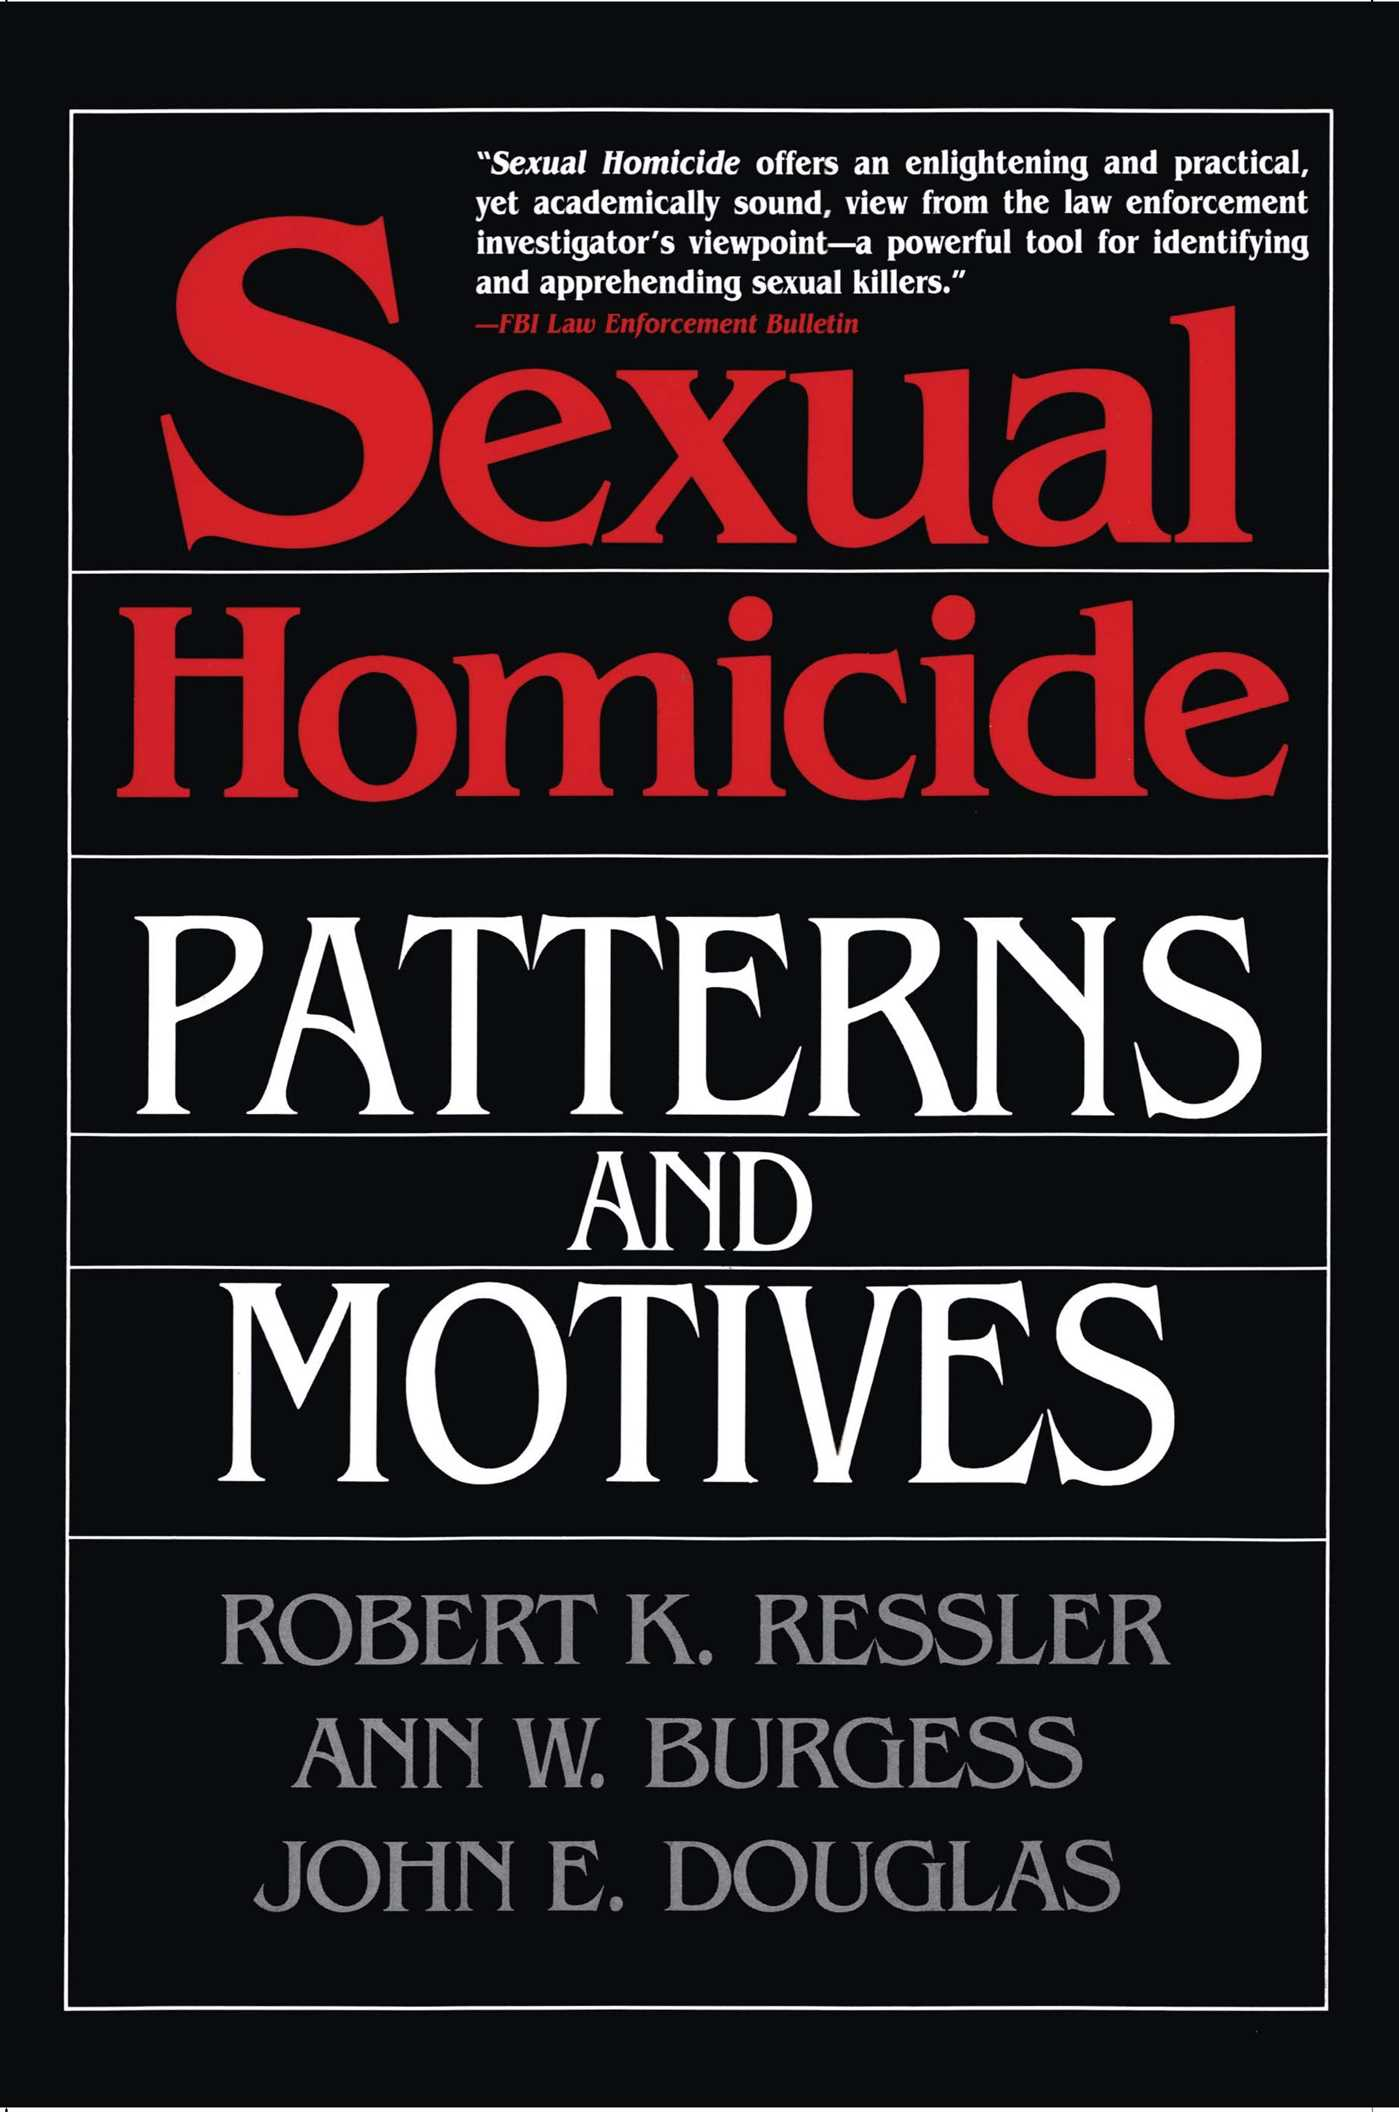 Sexual homicide patterns and motives paperback 9780028740638 hr